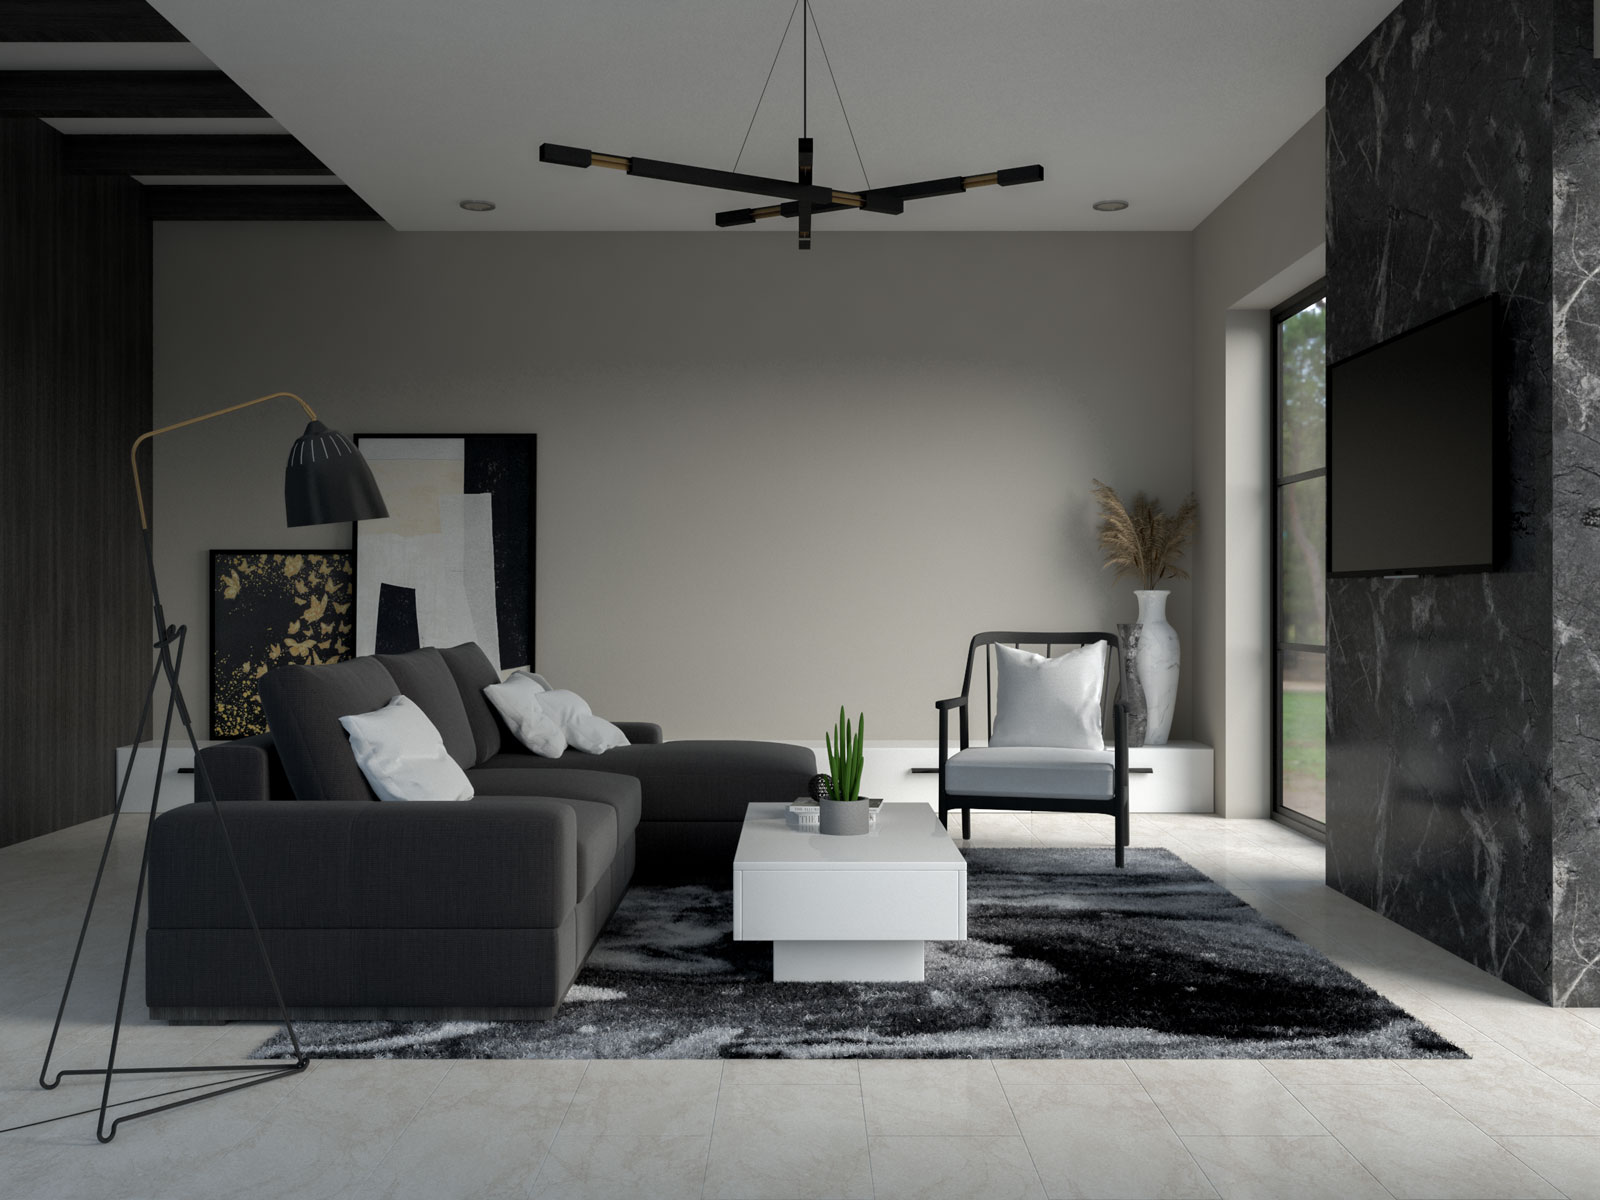 Mindful gray walls with black and white furnishings